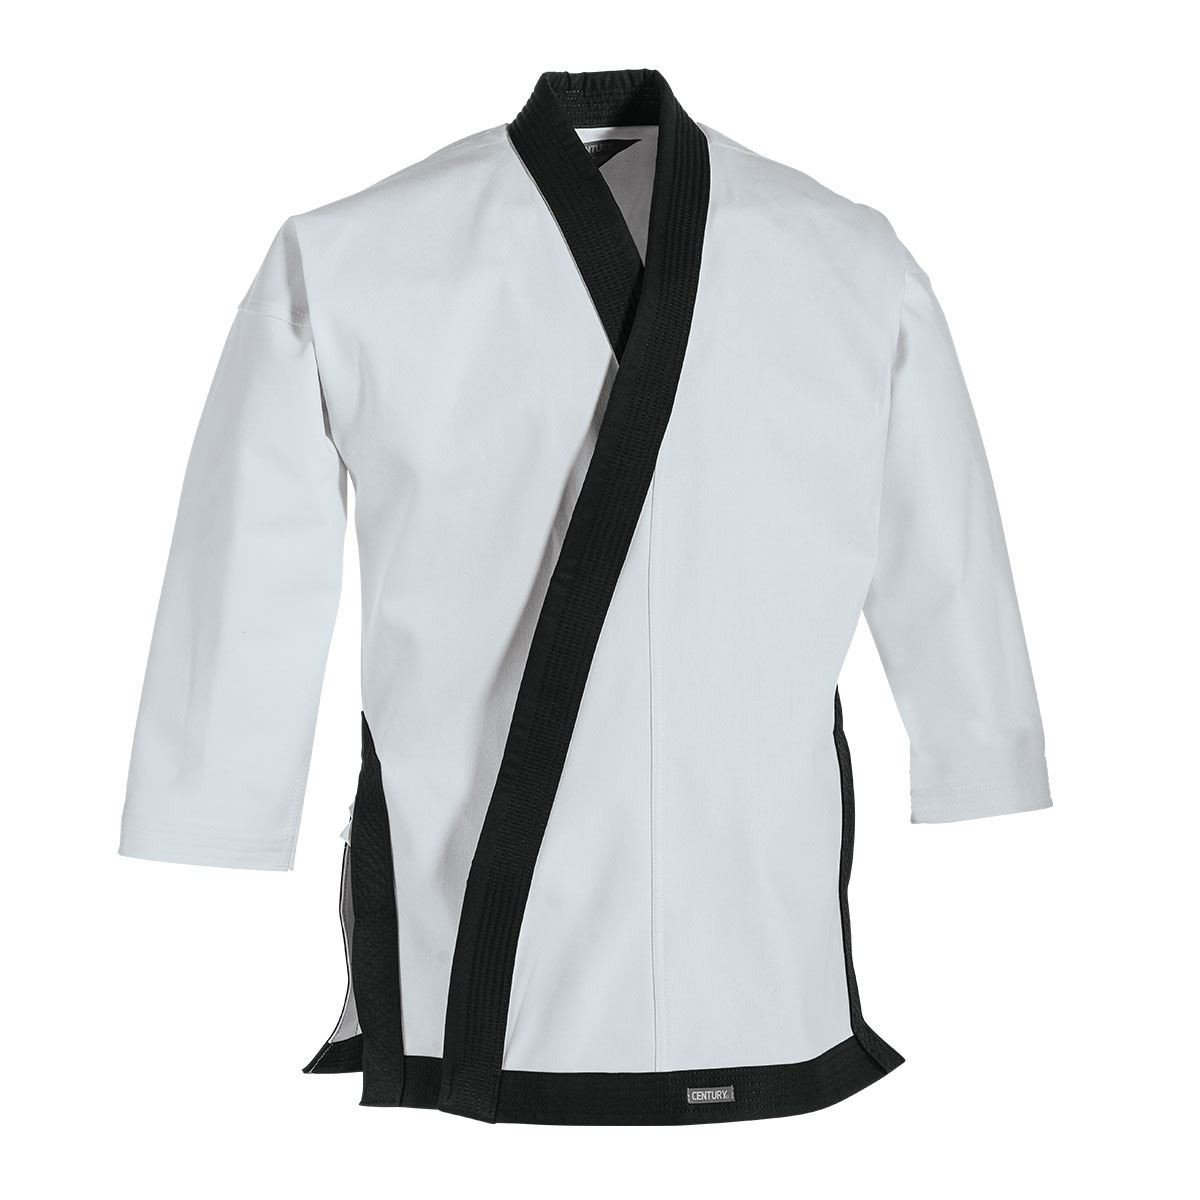 12 oz. Traditional Tang Soo Do Jacket with no Cuffs